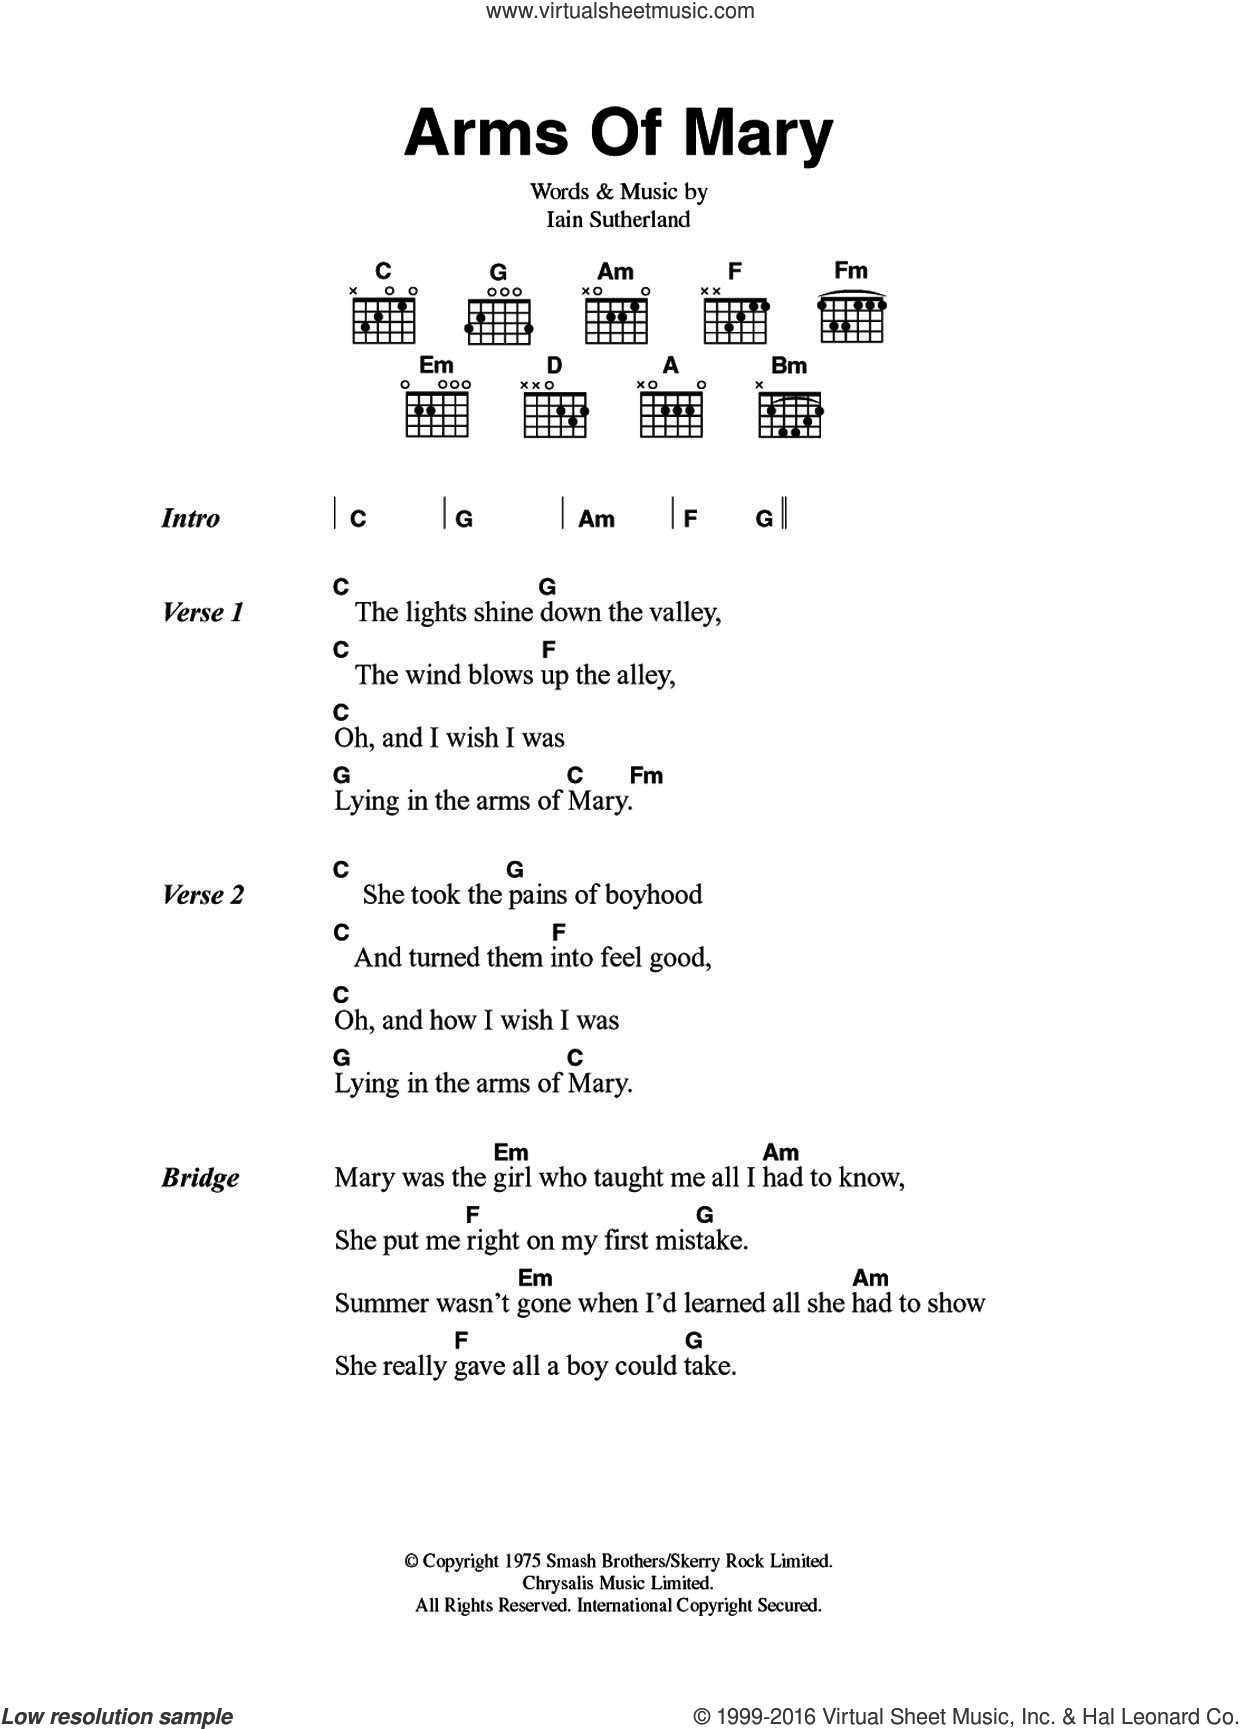 Arms Of Mary sheet music for guitar (chords) by Sutherland Brothers, Quiver and Iain Sutherland, intermediate skill level